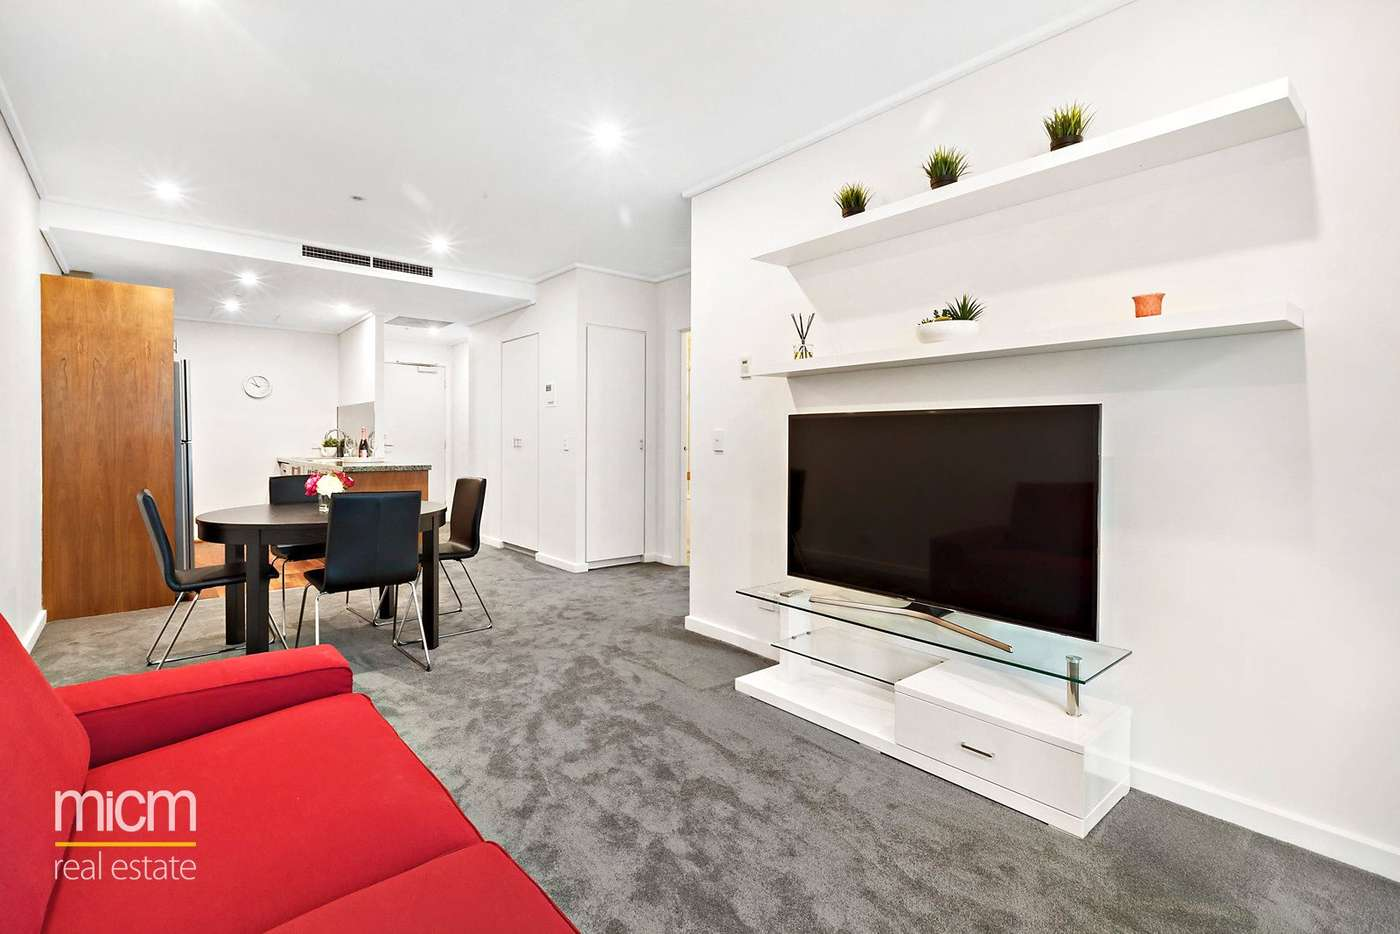 Main view of Homely apartment listing, 1204/12-16 Kavanagh Street, Southbank, VIC 3006